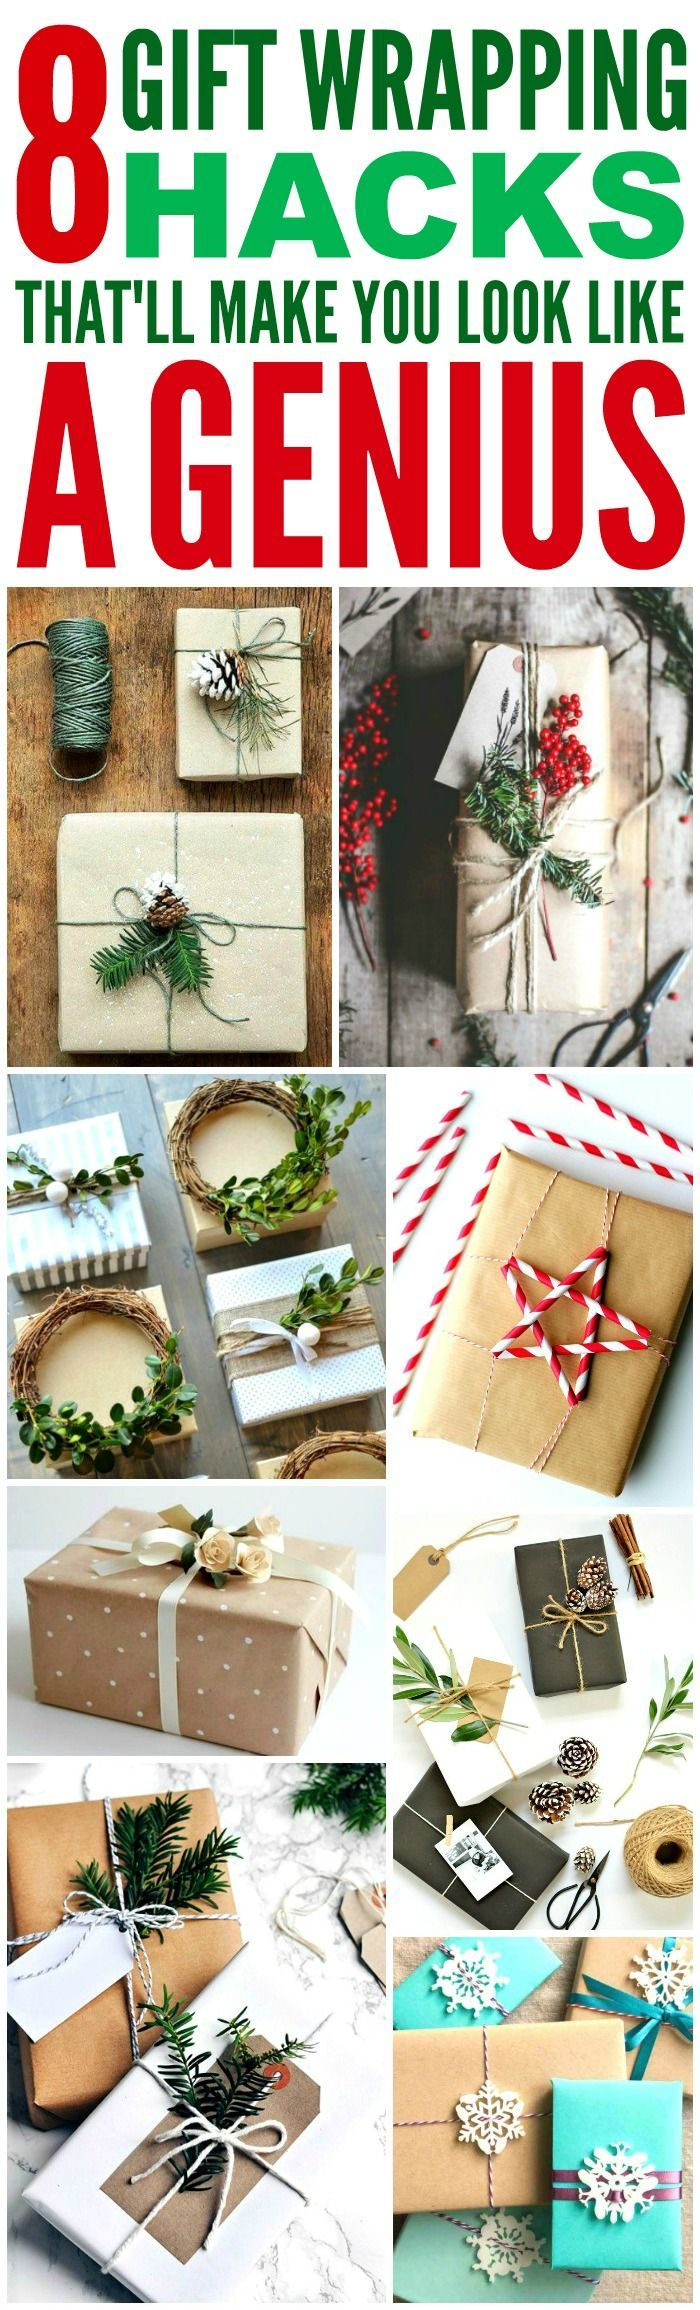 8 Super Creative and Brilliant Ways to Wrap Christmas Presents ...